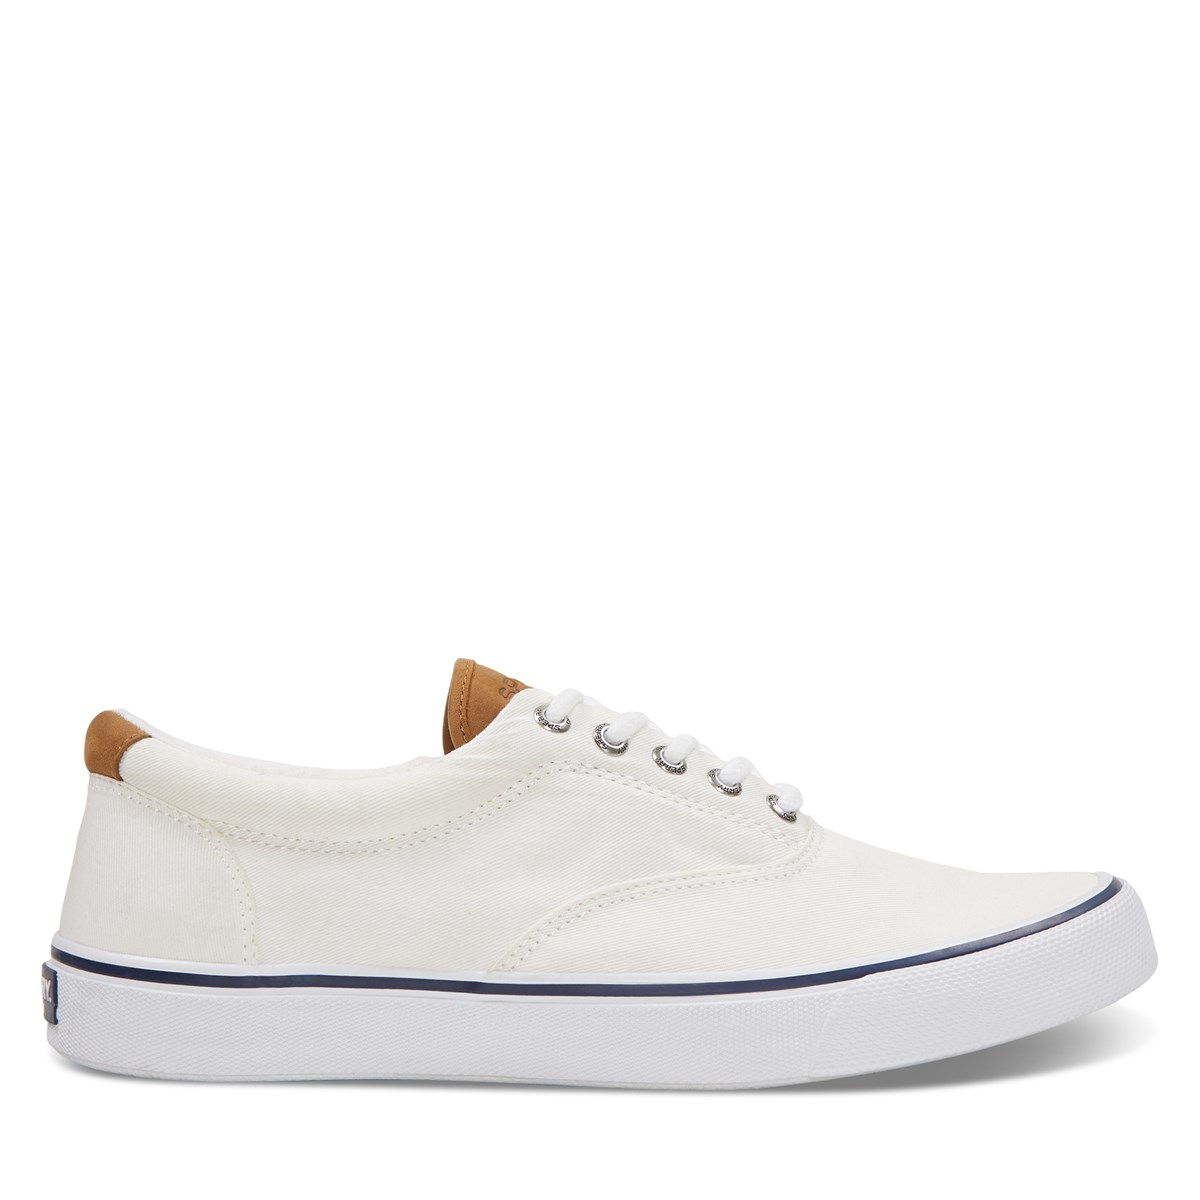 Men's Stripper II CVO Sneakers in White